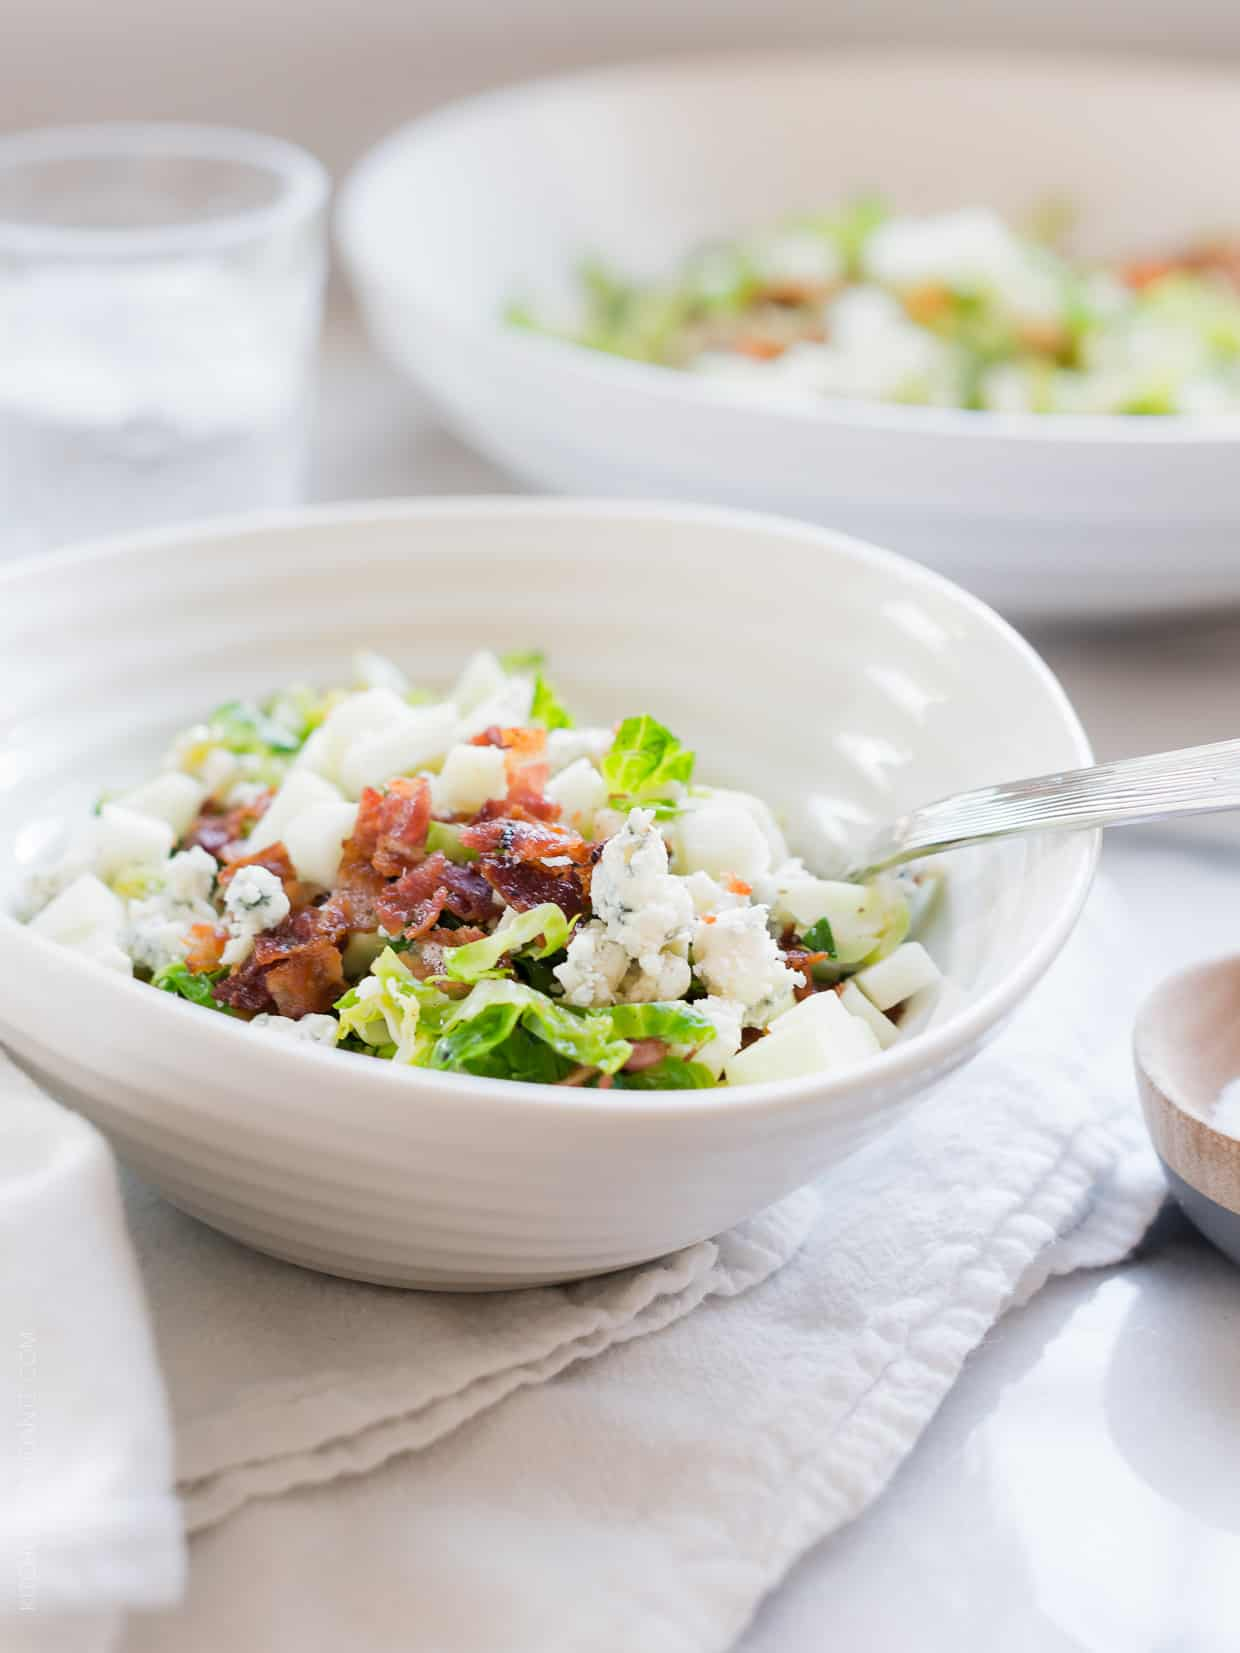 Shredded Brussels Sprouts Salad with Bacon, Apple & Gorgonzola